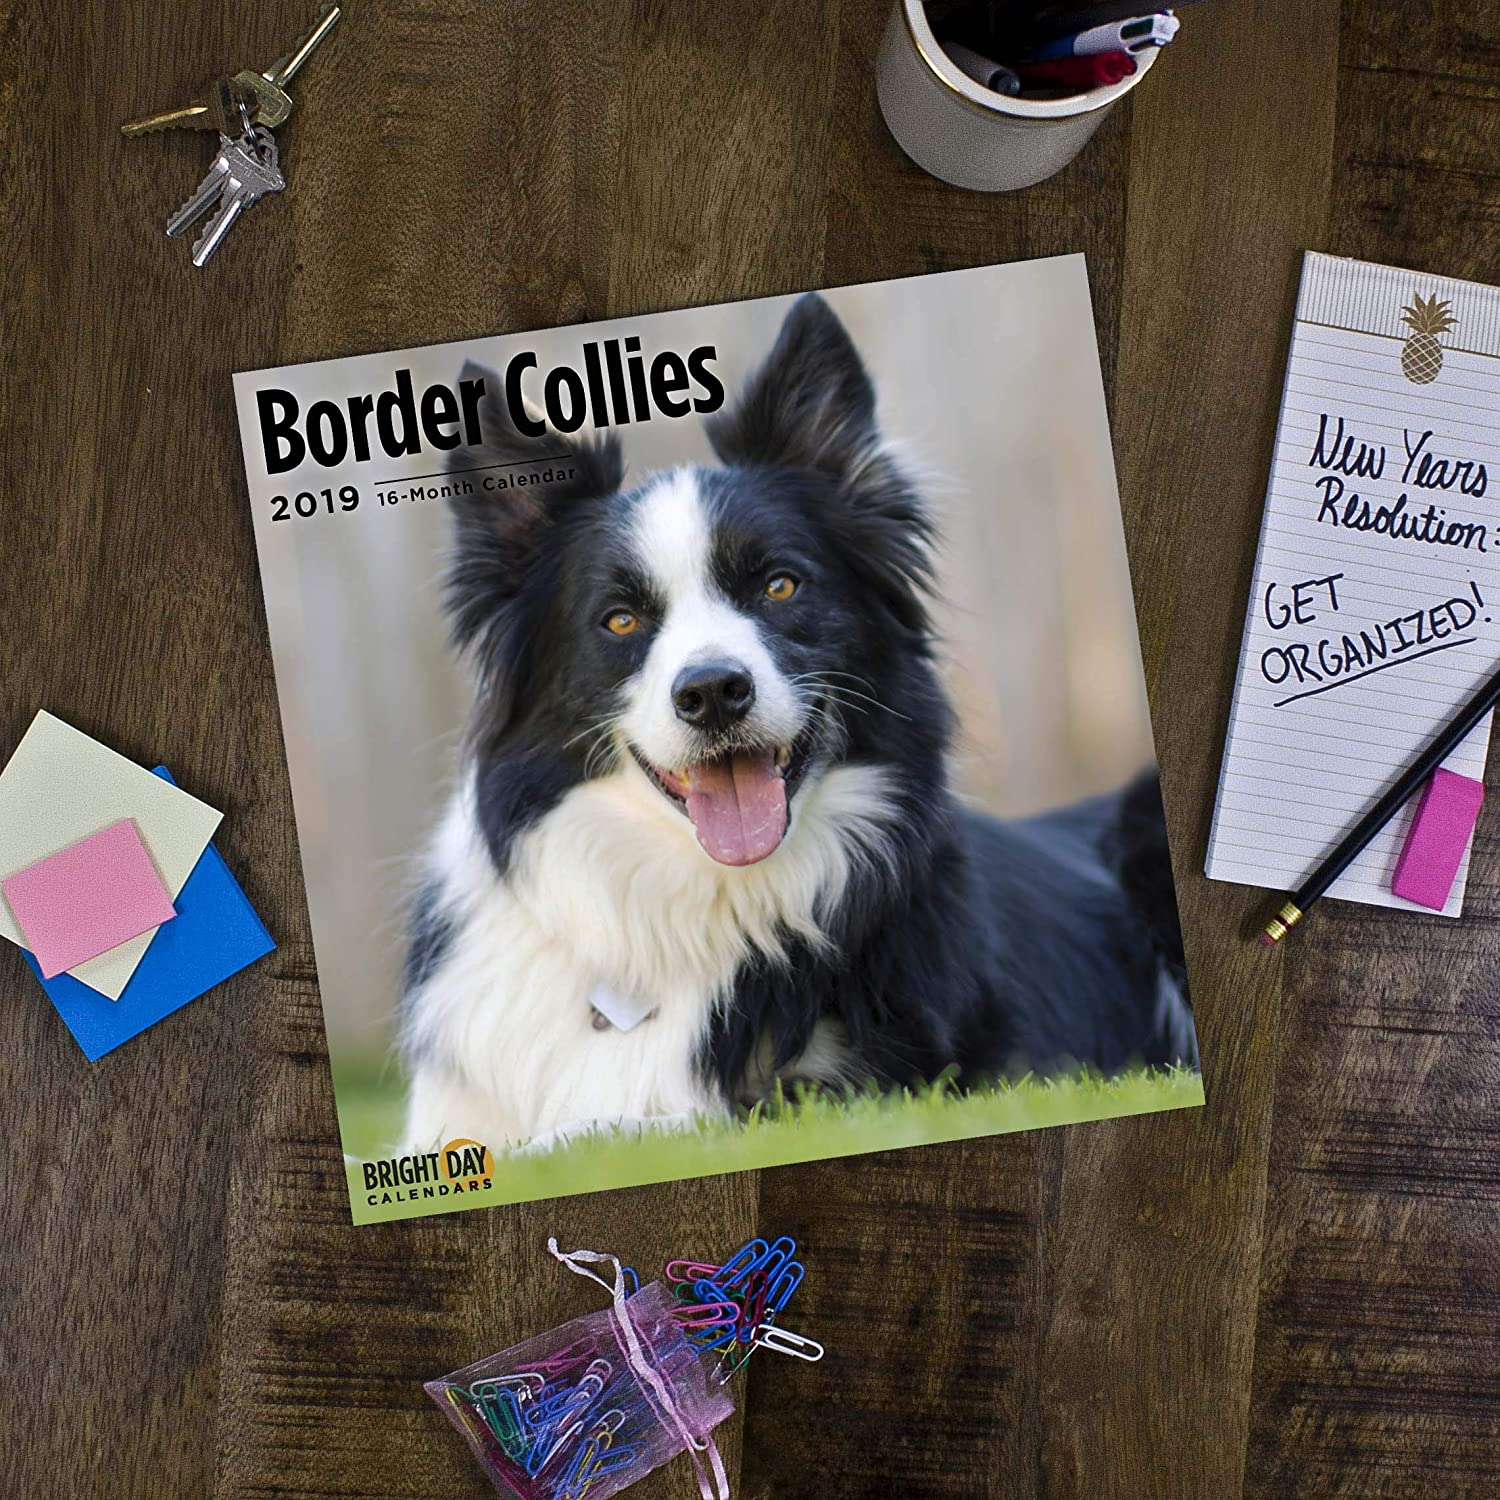 amazoncom border collies 2019 16 month wall calendar 12 x 12 inches office products